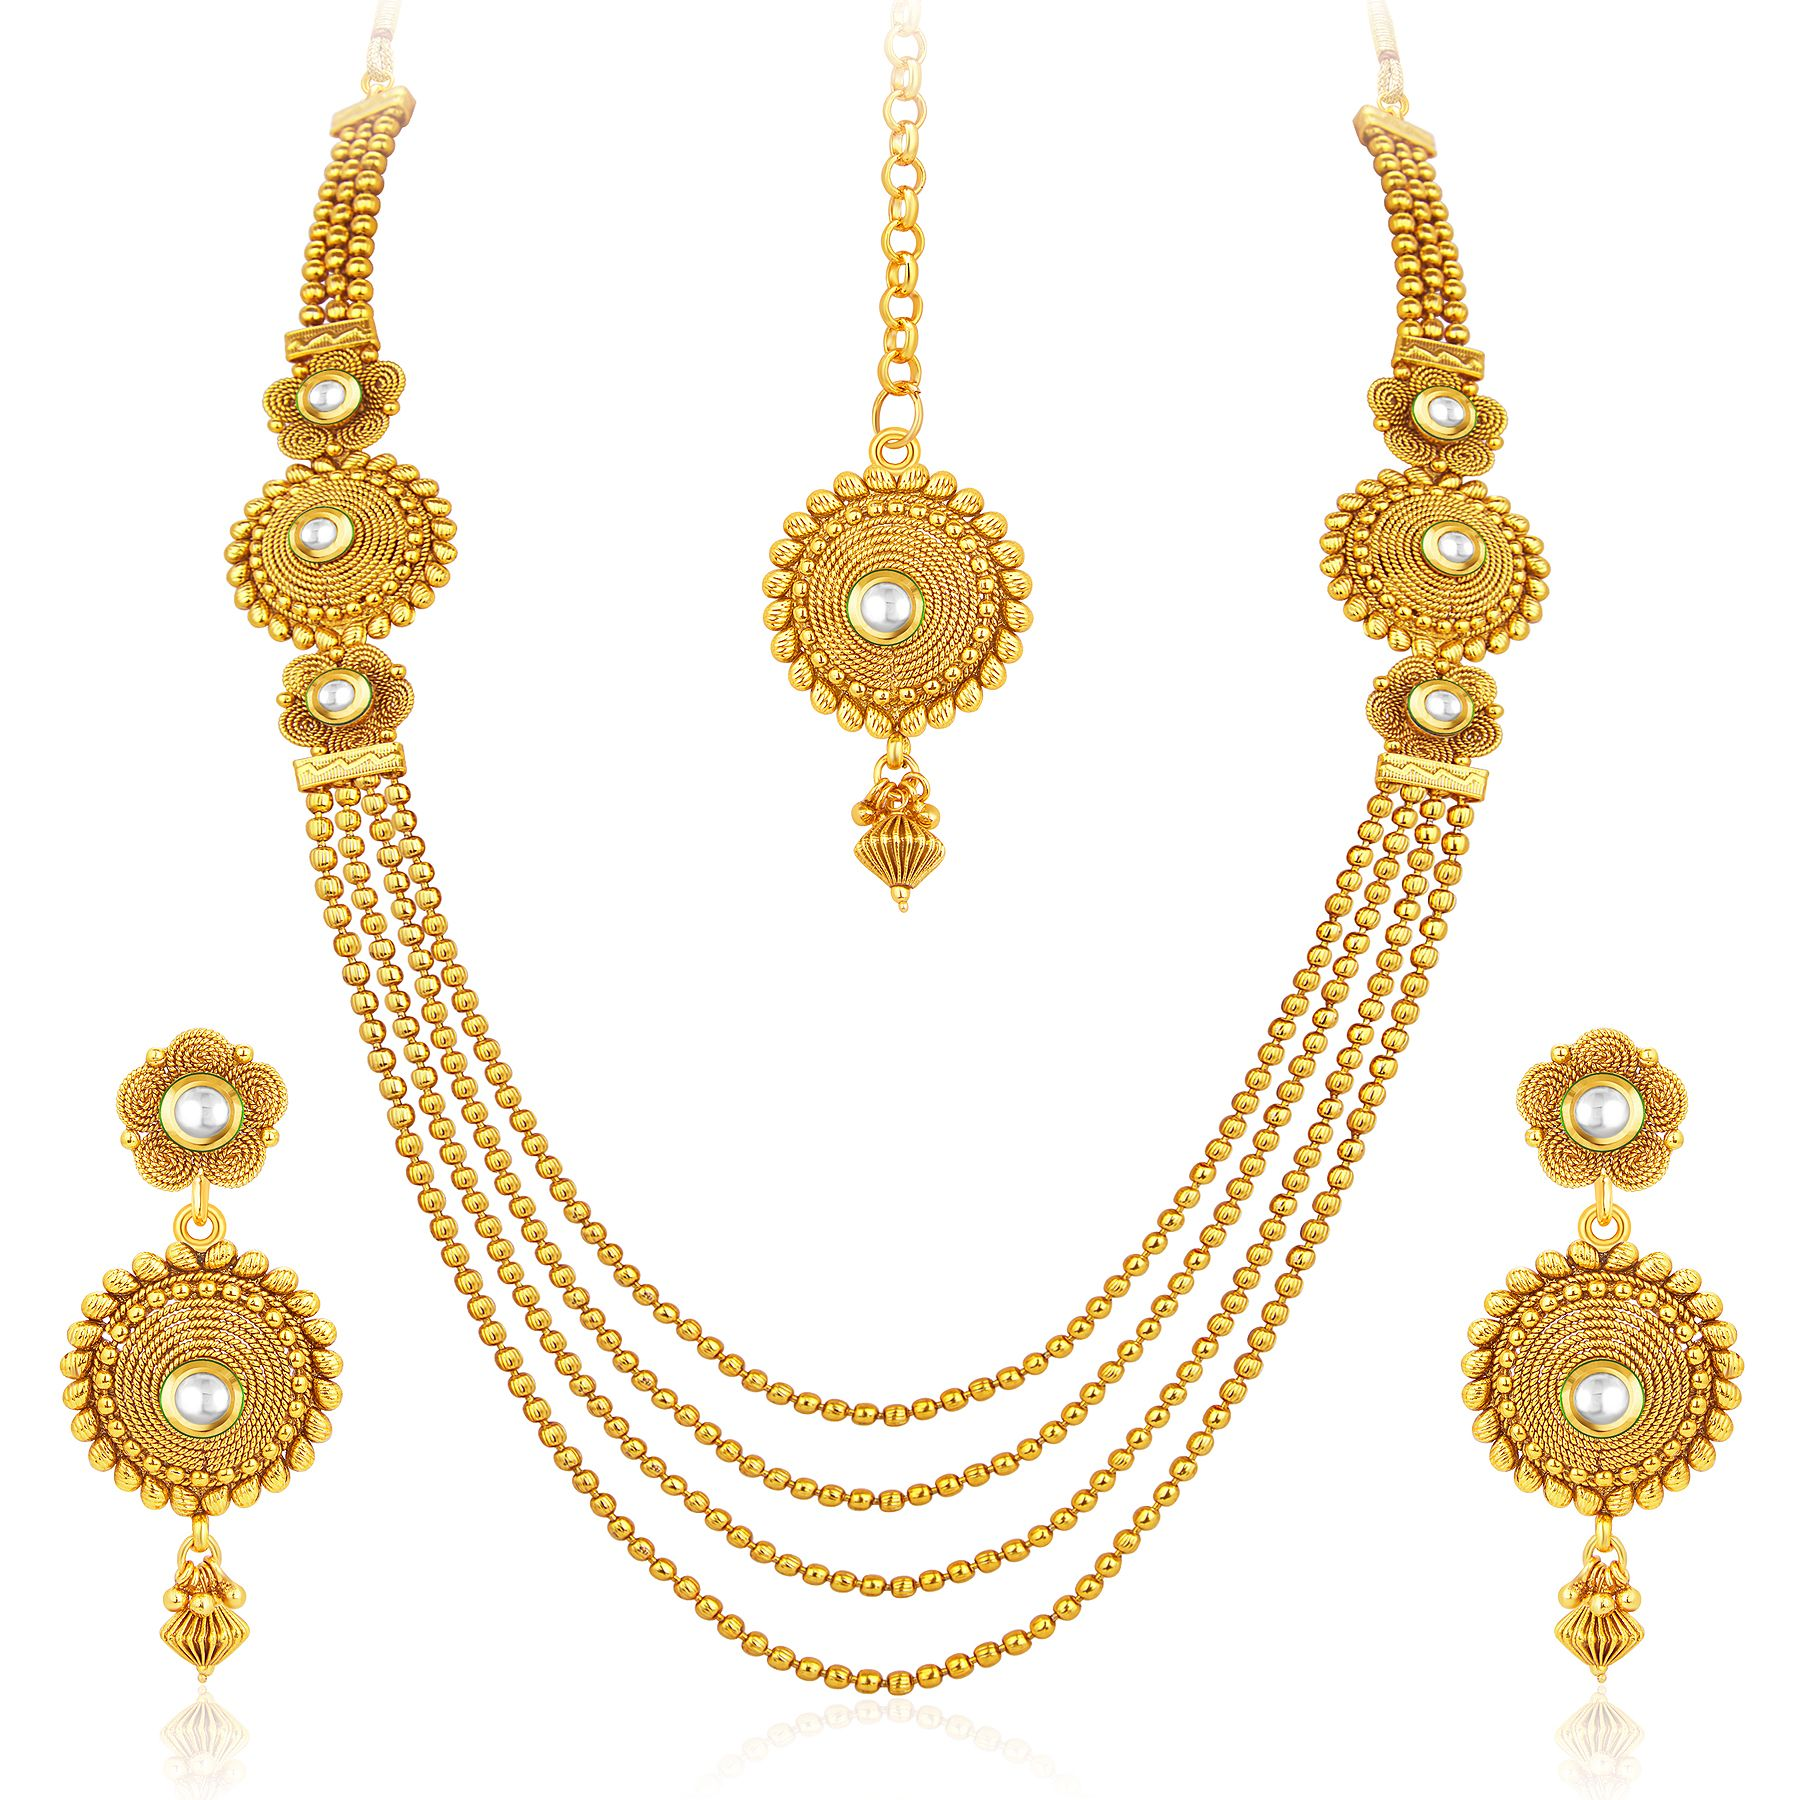 Pleasing four strings gold plated necklace set for women